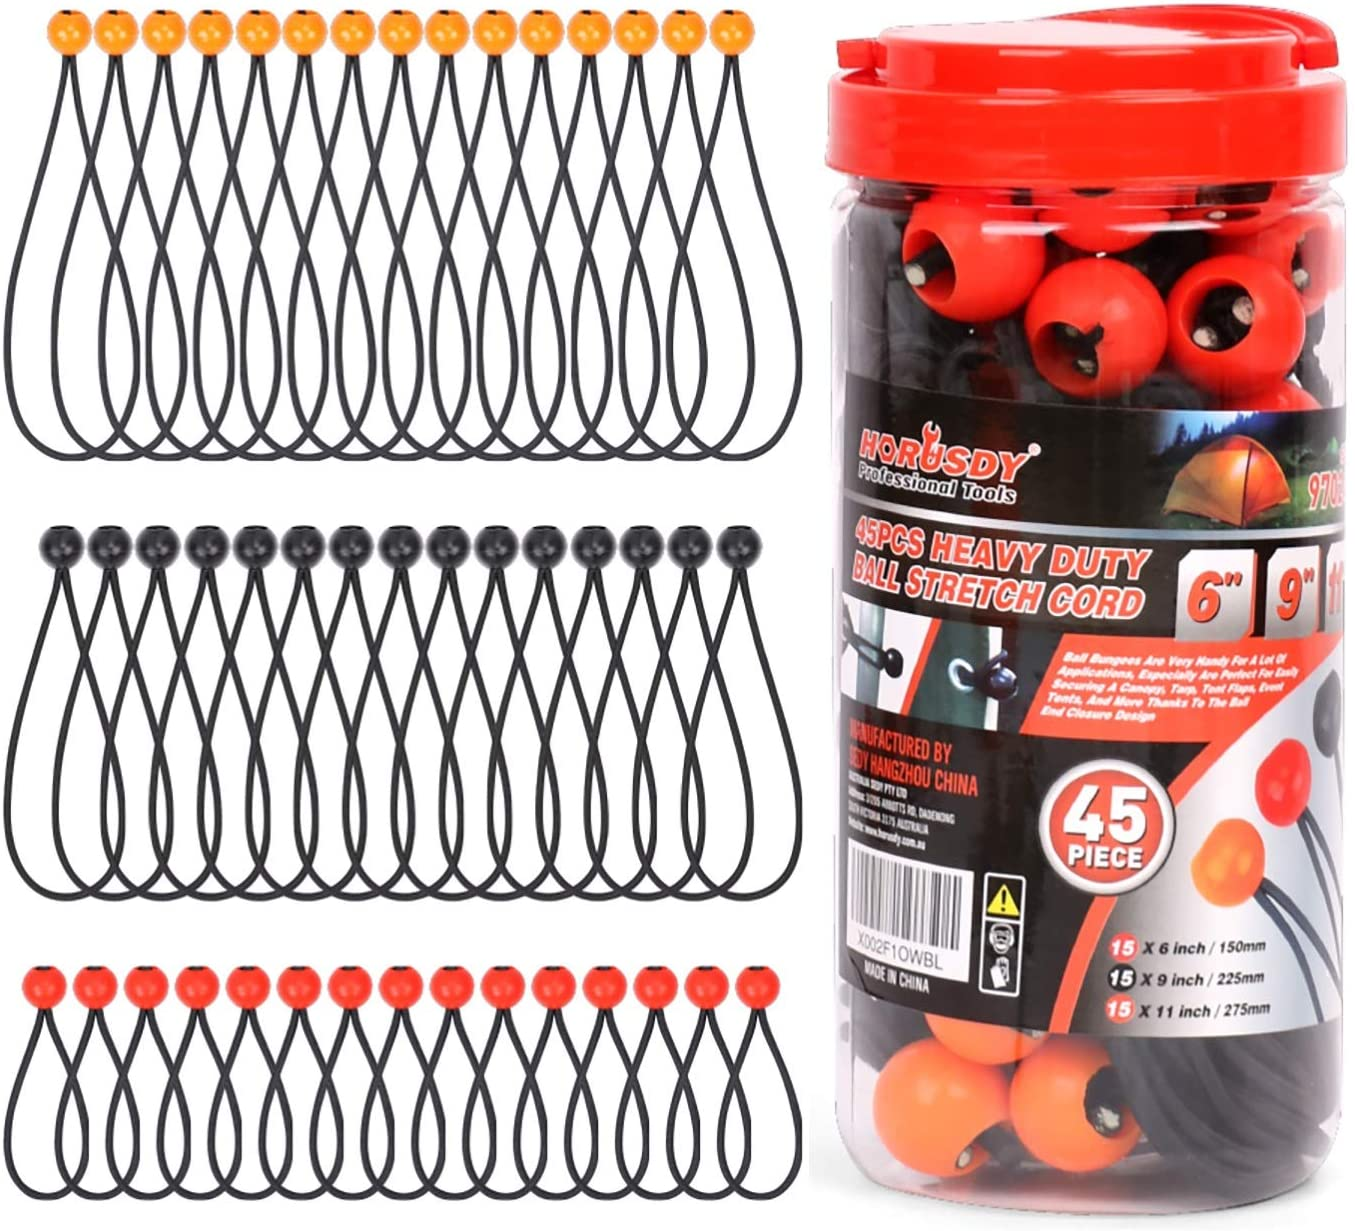 CHINA 100 Piece 6 Ball Bungee Cord Tie Down Plastic Toggle Balls Straps For Tarp Tents Canopies 6IN WHITE